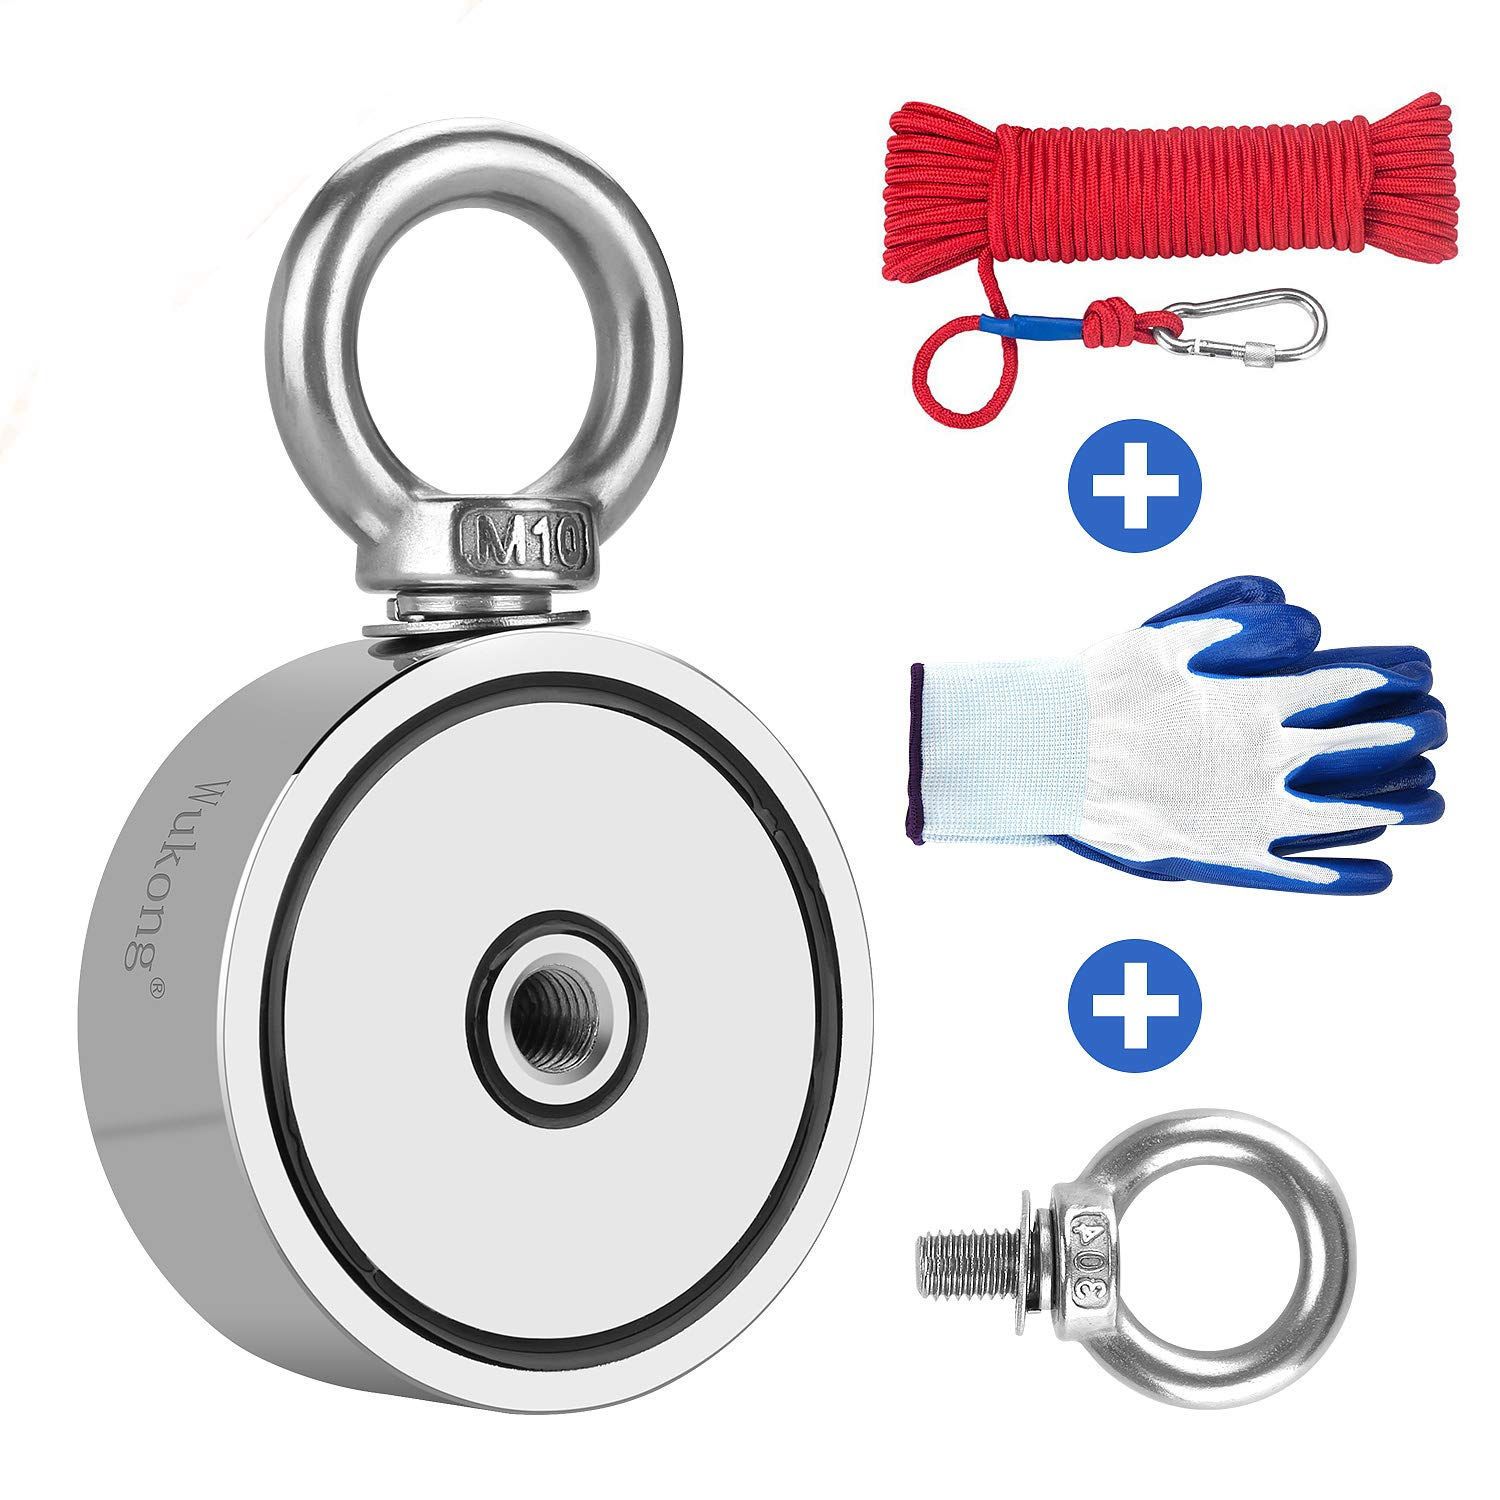 Fishing Magnet with 66ft Rope & Glove, Wukong 760LB Pulling Force Super Strong Neodymium Magnet with Heavy Duty Rope & Carabiner for Magnet Fishing and Retrieving in River - 67mm Diameter by WUKONG